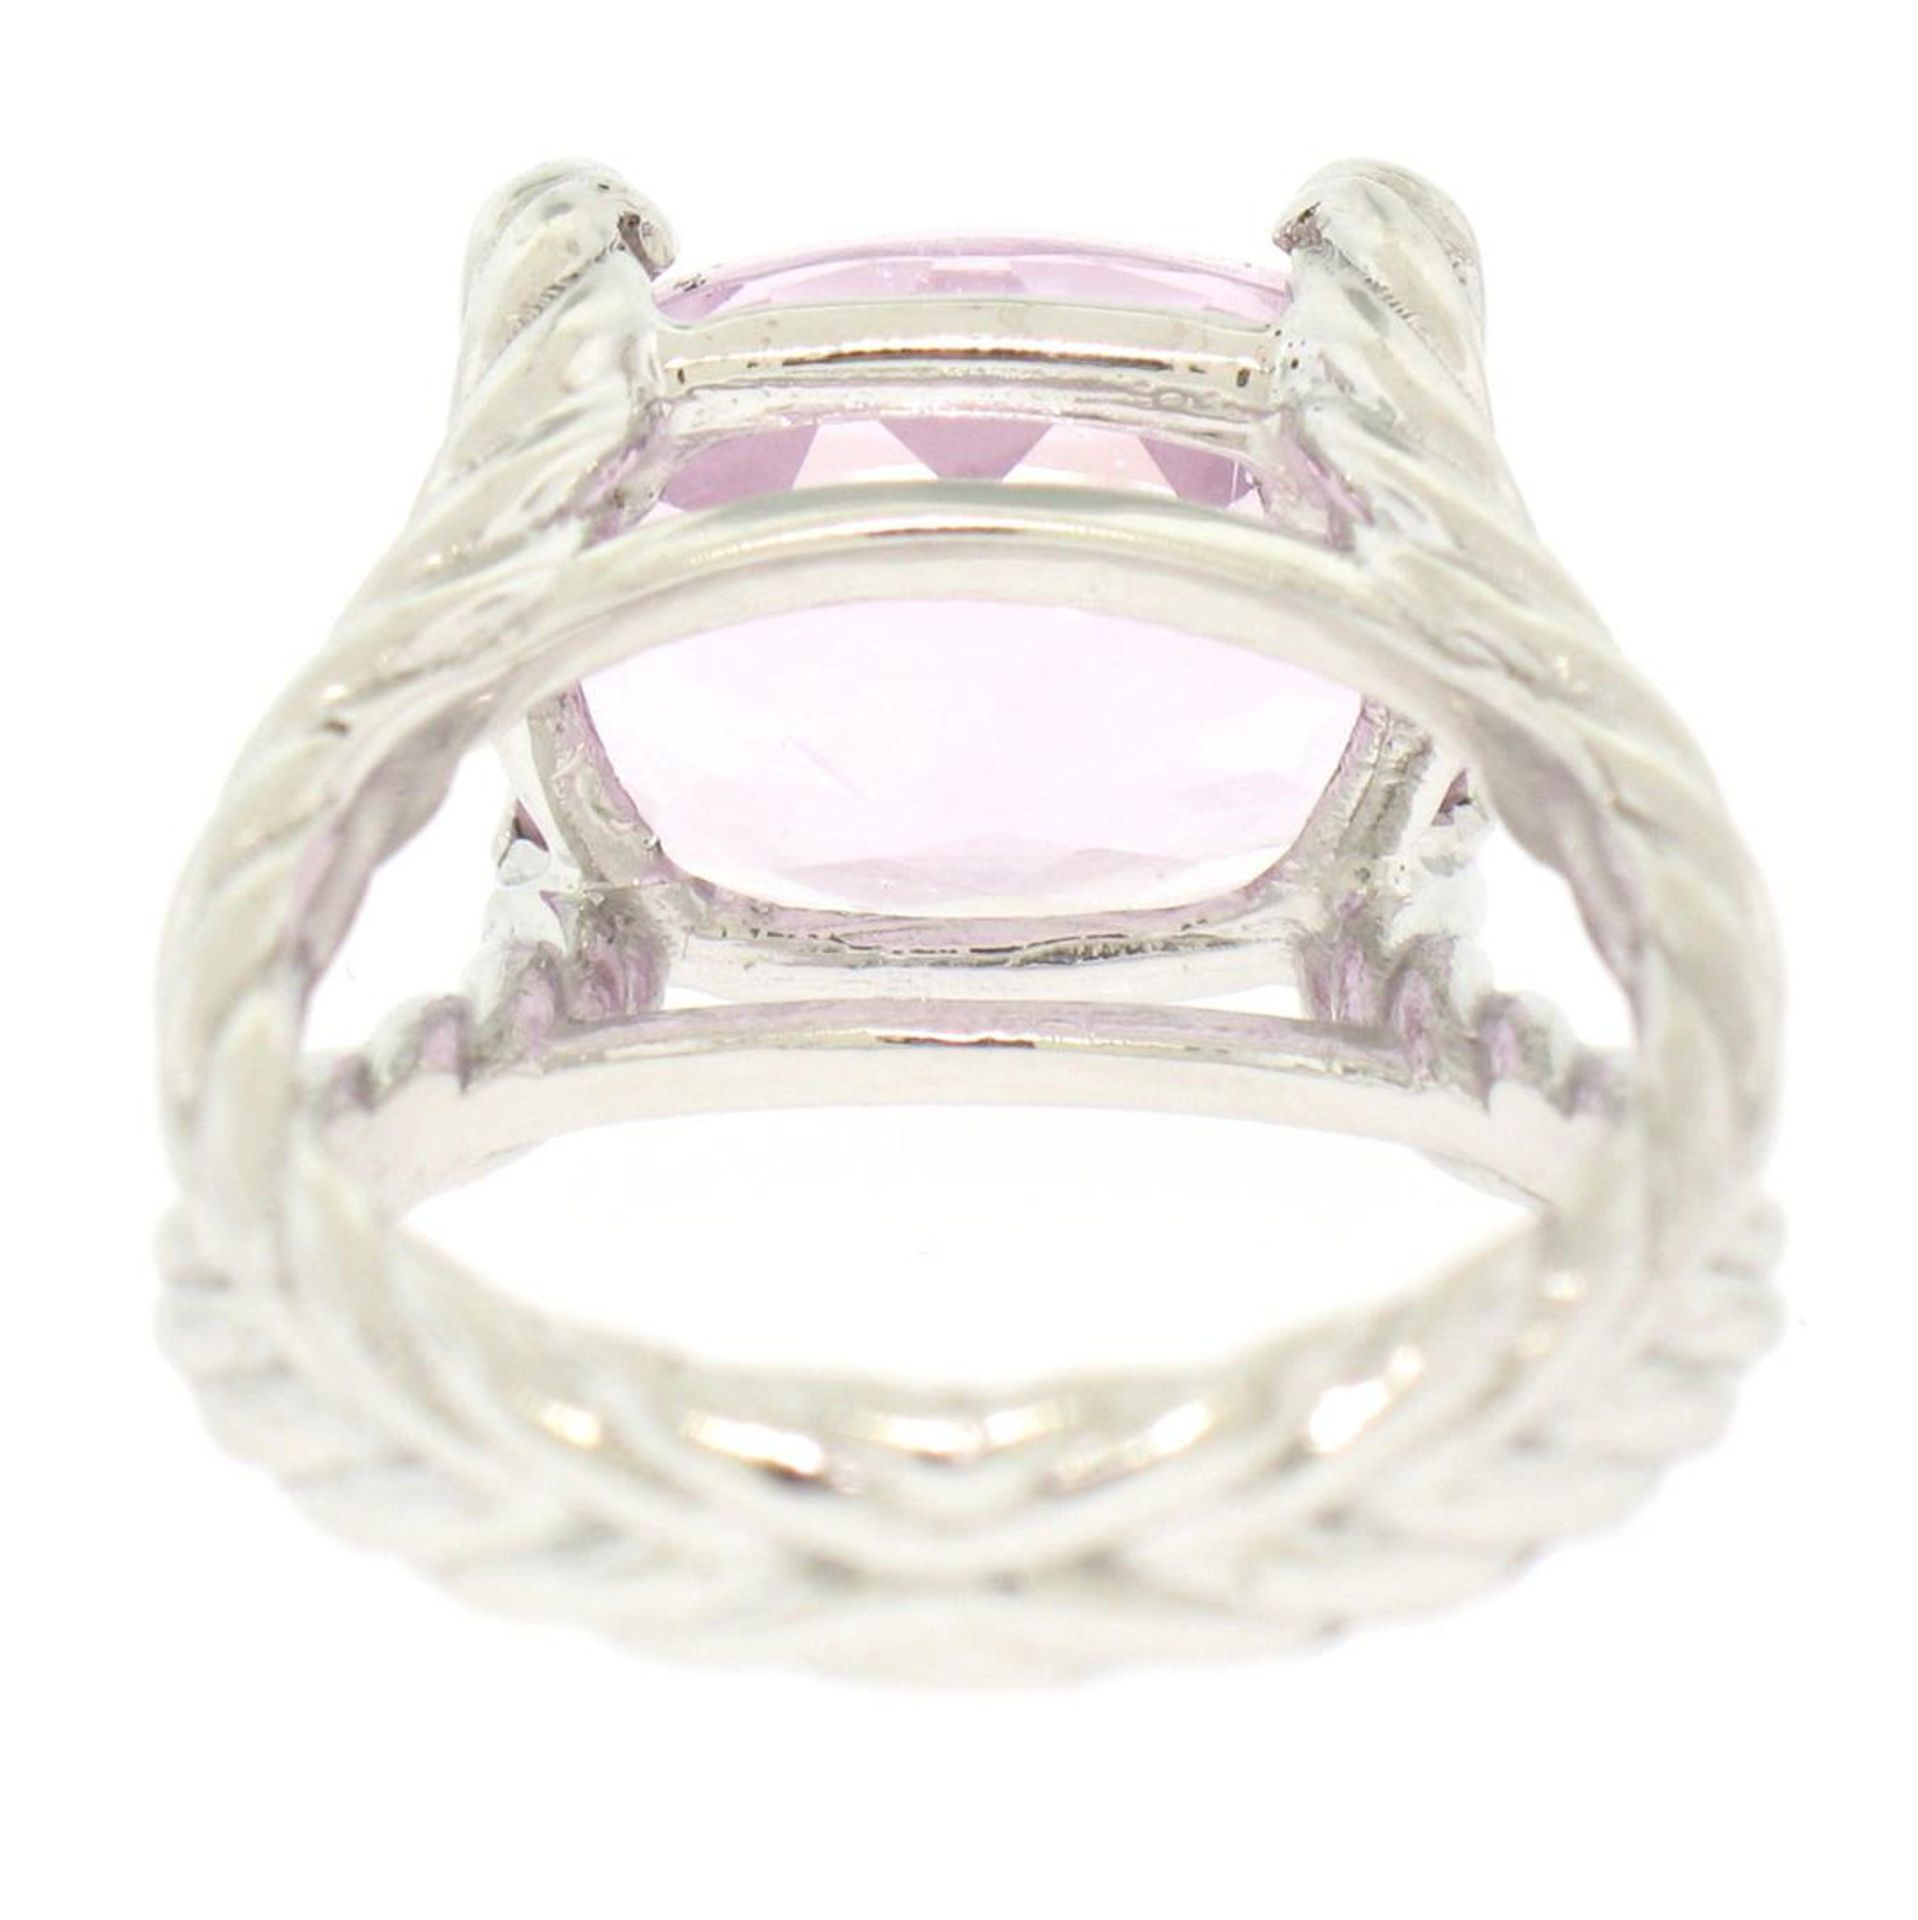 14k White Gold Twisted Cable 8.5 ctw Oval Kunzite Solitaire Ring 4 Diamond Accen - Image 4 of 8